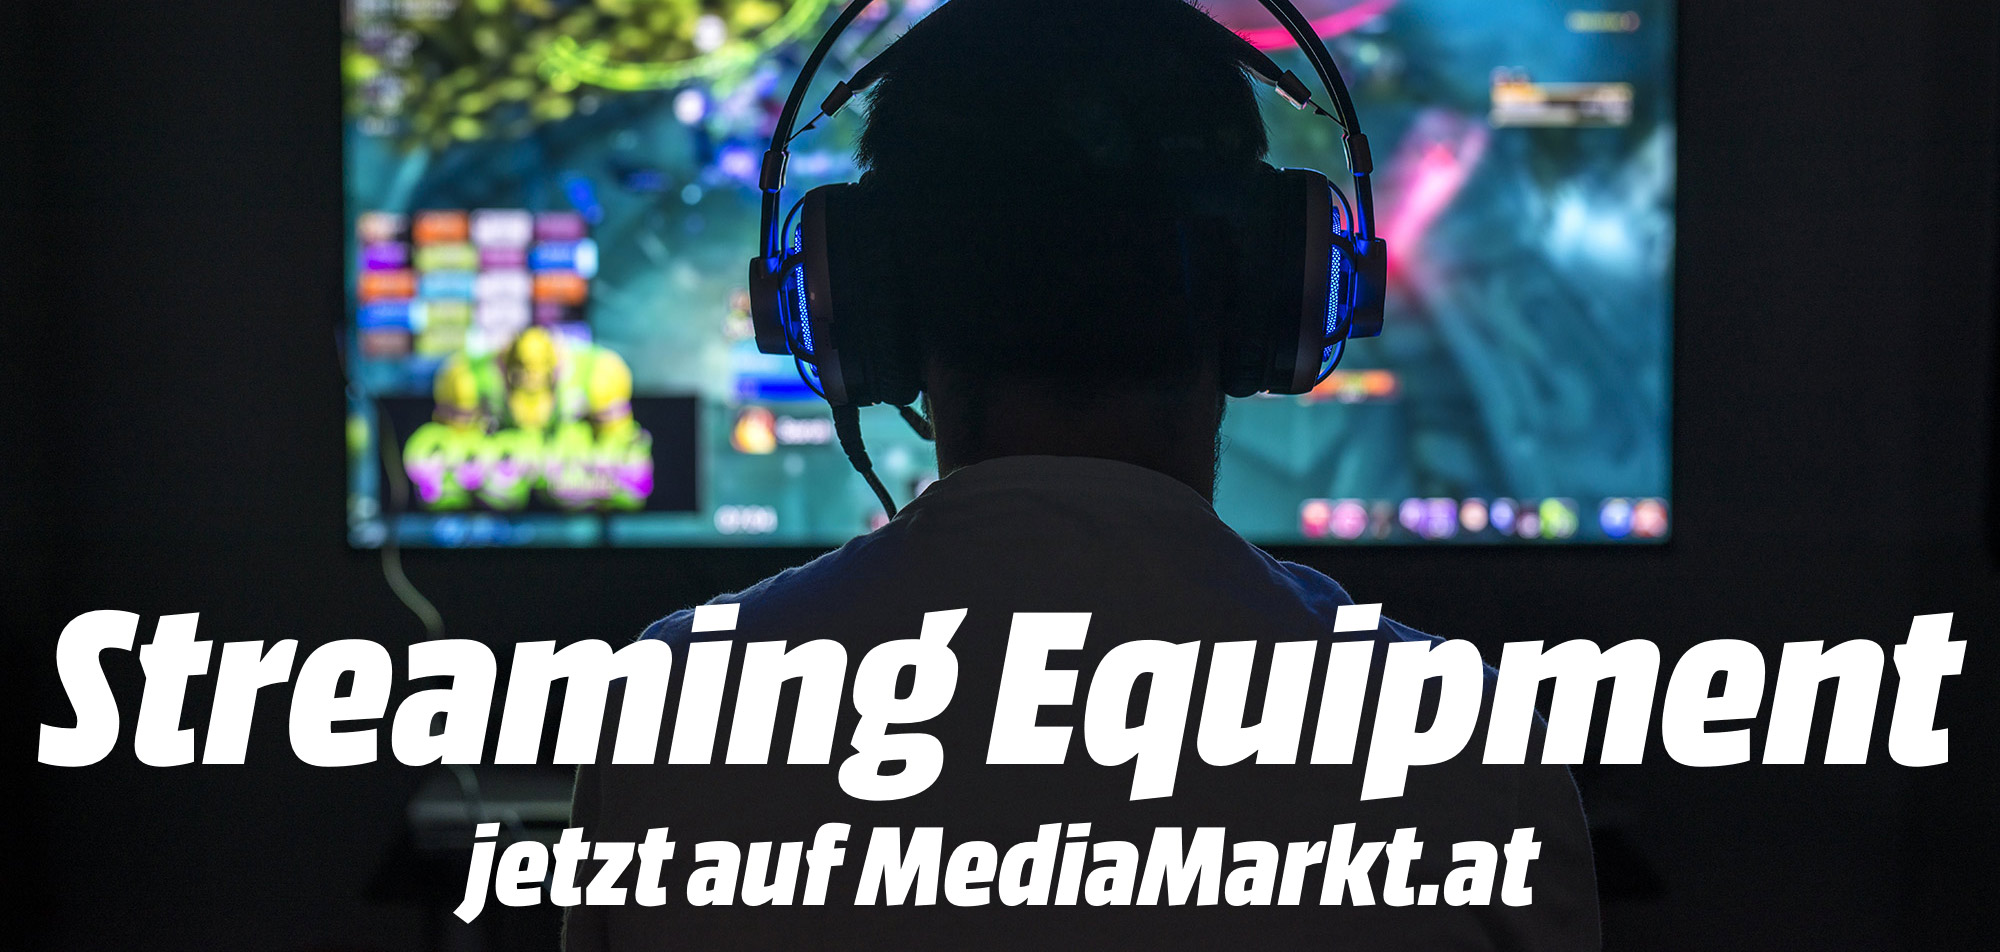 Streaming Equipment jetzt auf MediaMarkt.at